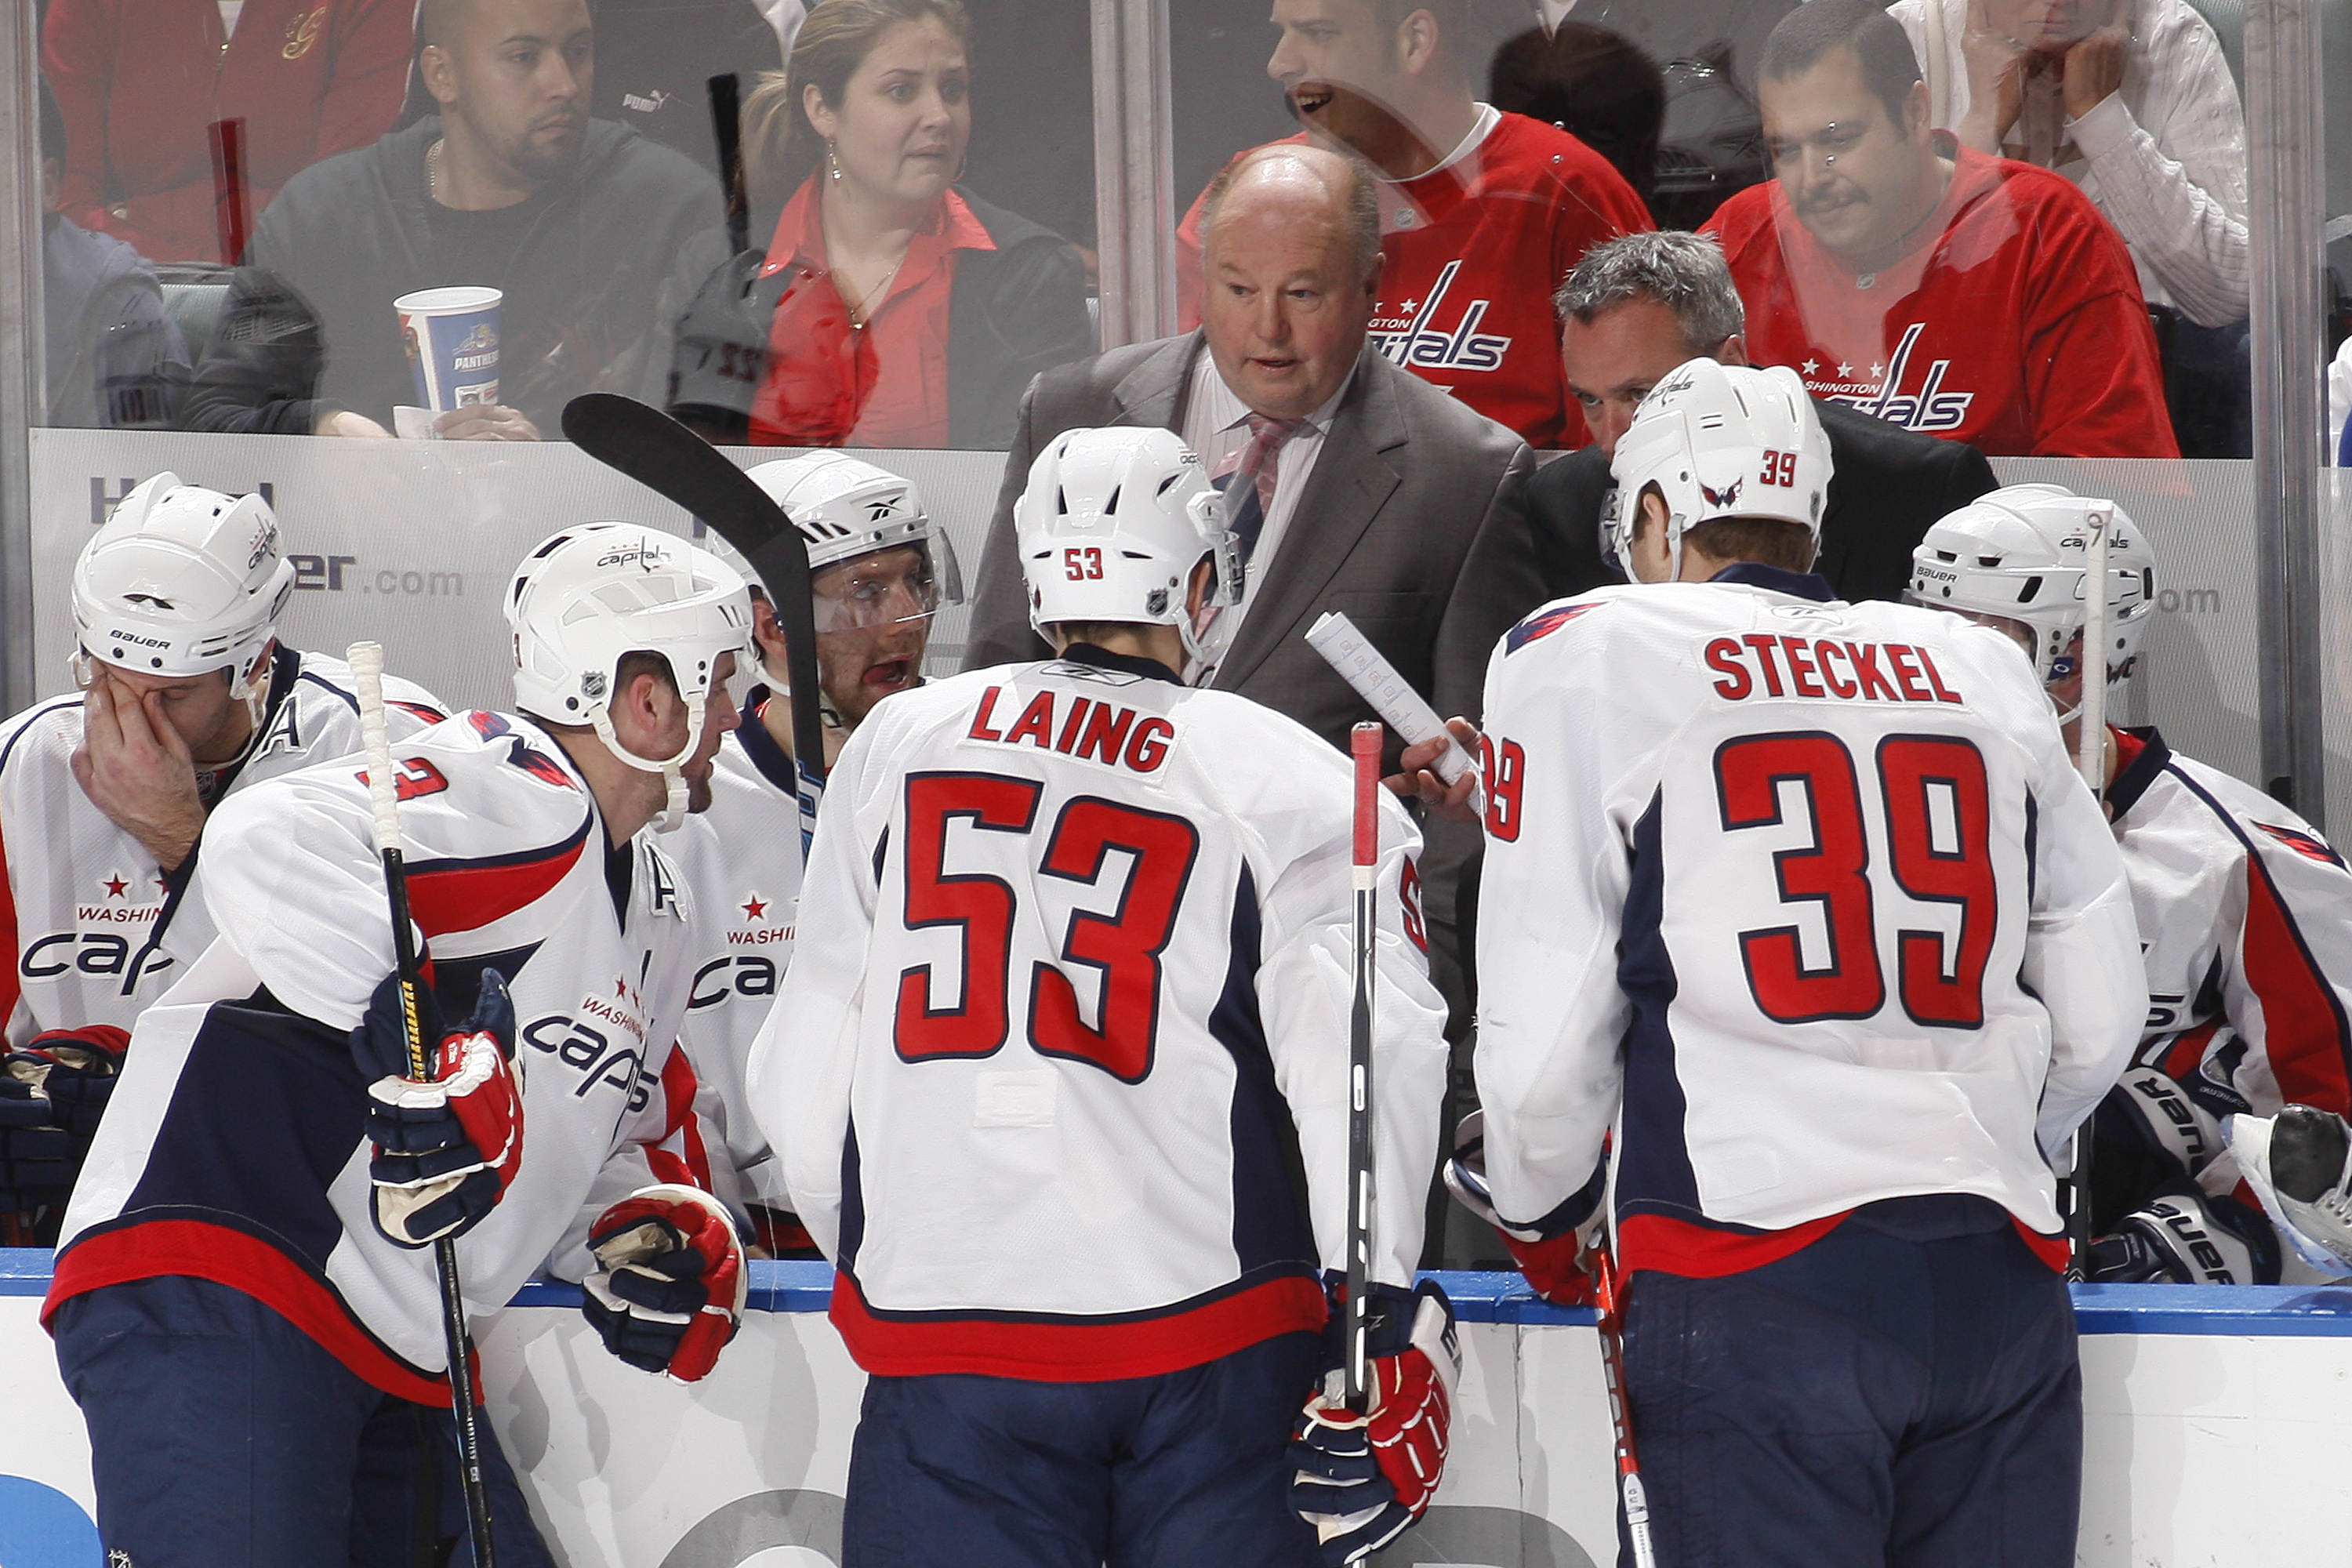 SUNRISE, FL - JANUARY 13: Head coach Bruce Boudreau talks to members of the Washington Capitals during the overtime period against the Florida Panthers on January 13, 2010 at the BankAtlantic Center in Sunrise, Florida. (Photo by Joel Auerbach/Getty Image